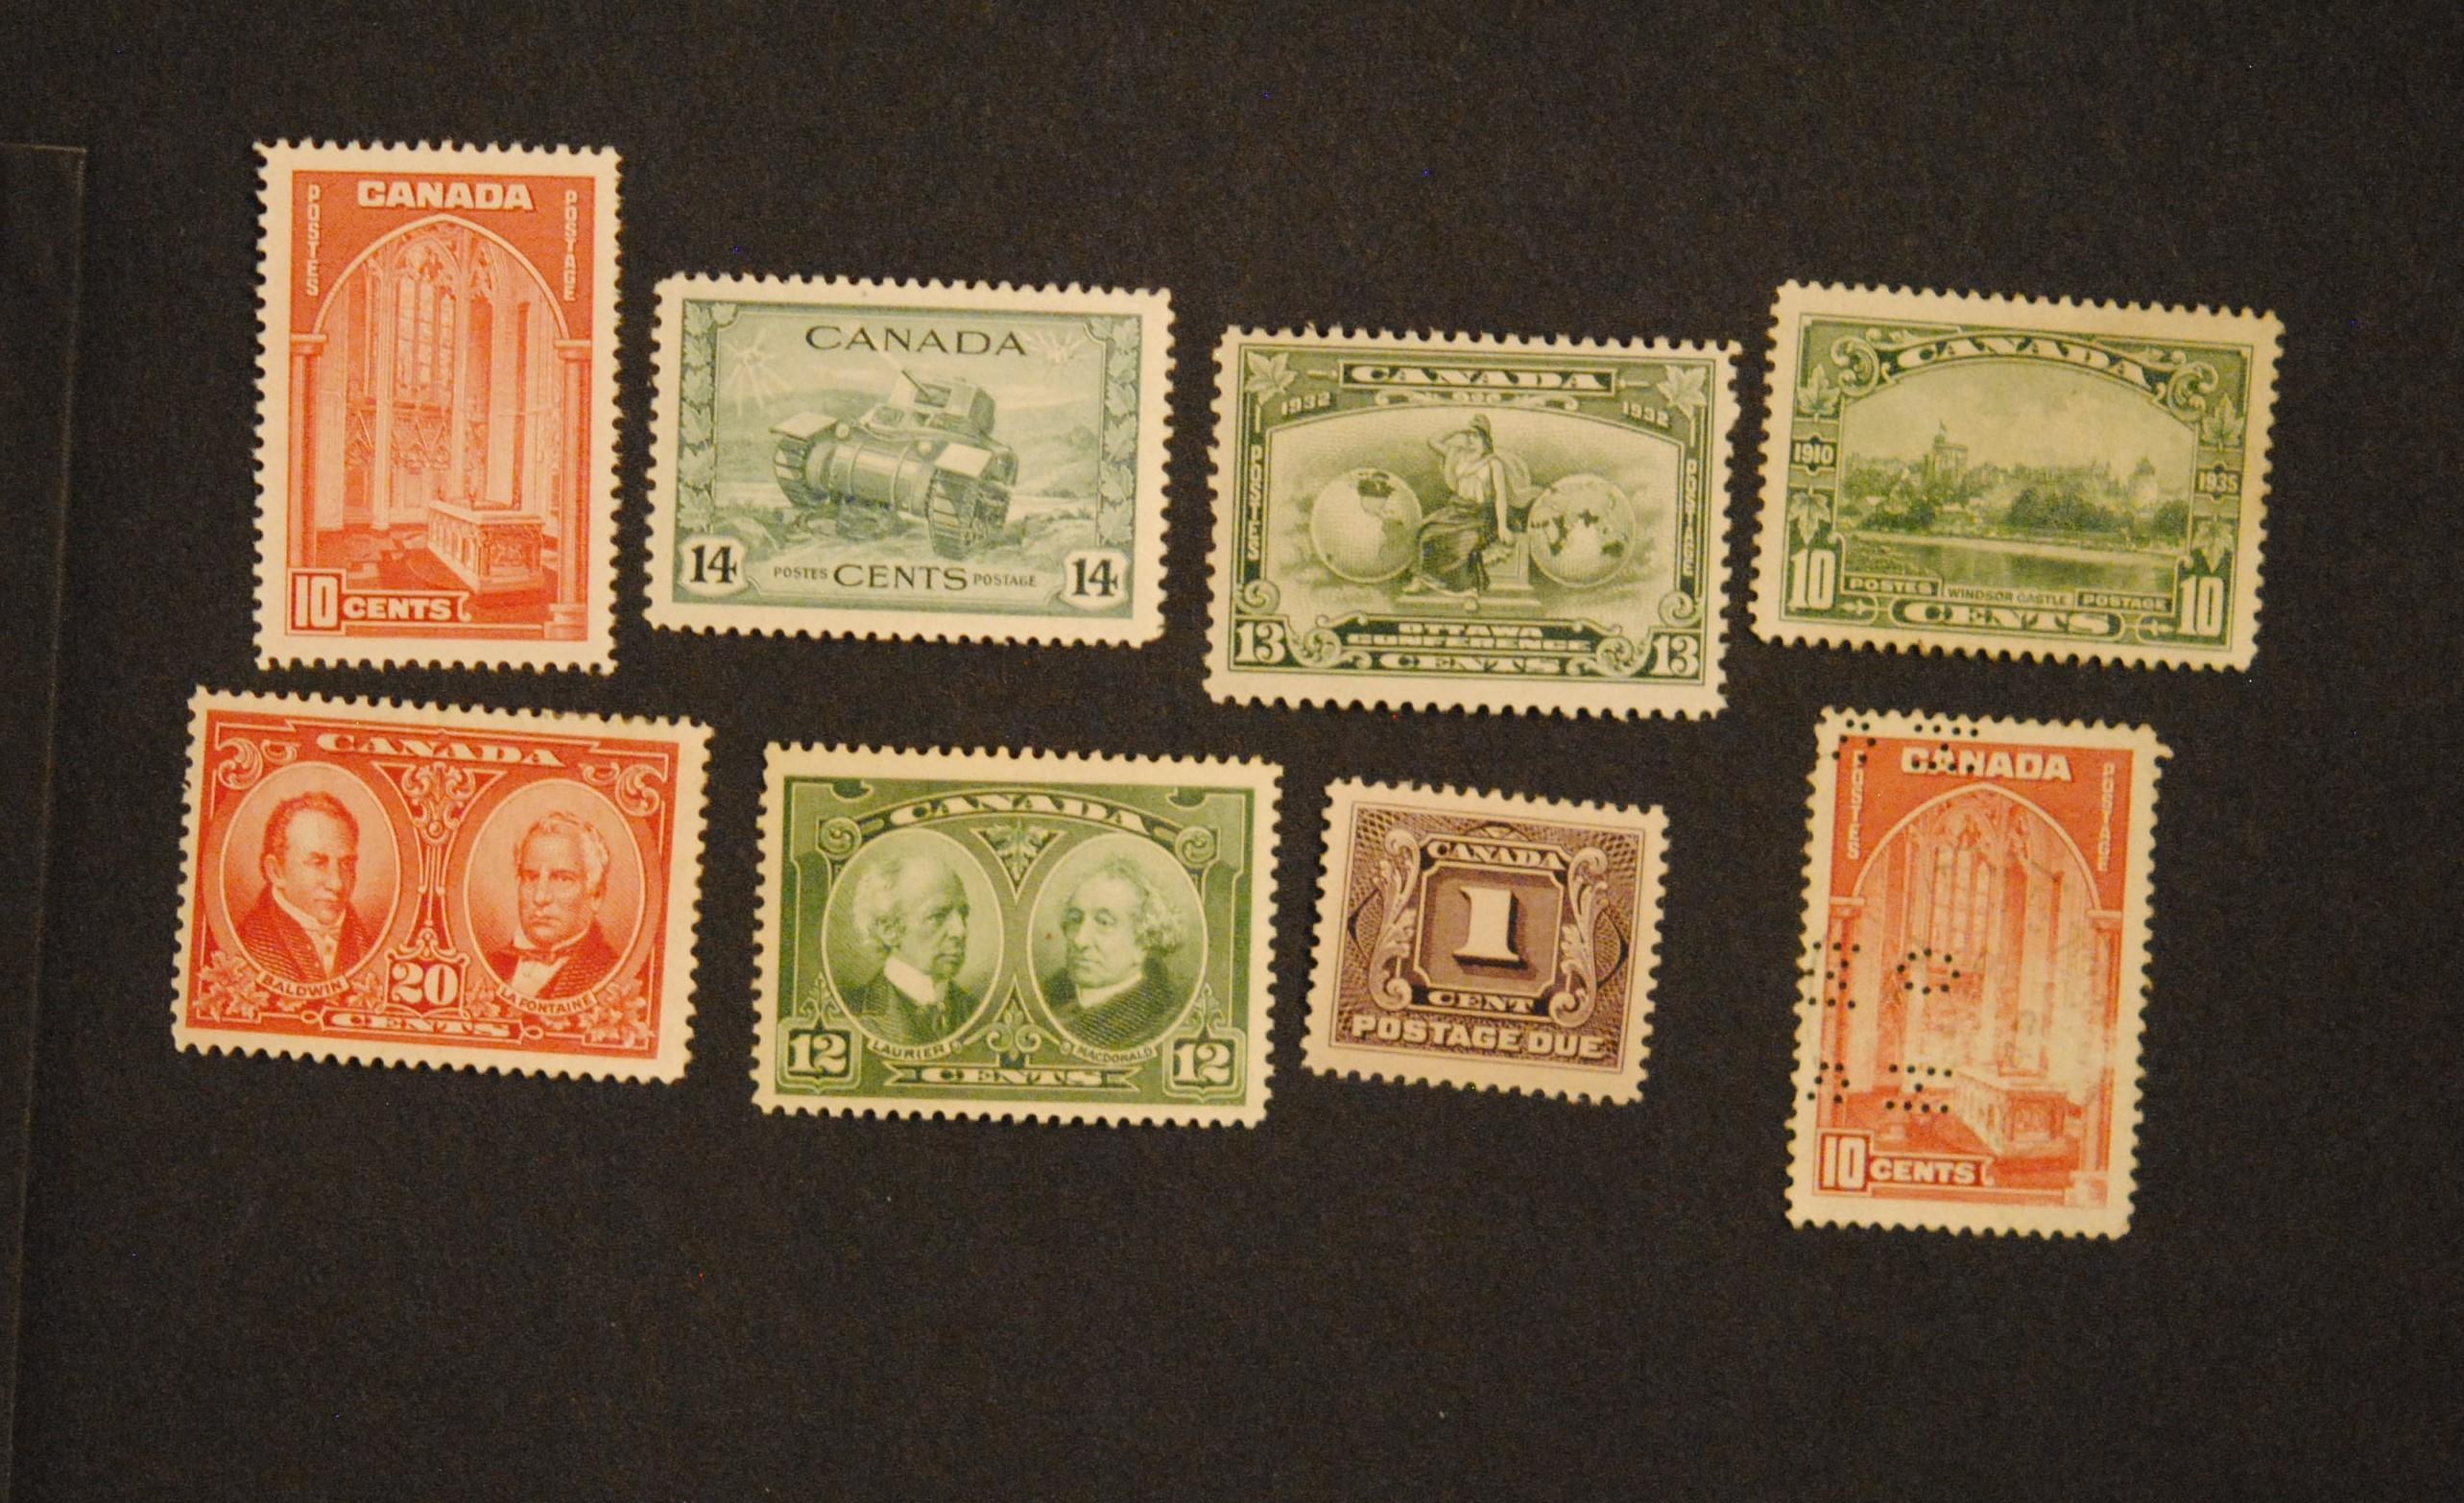 Canada Stamp Collection 19